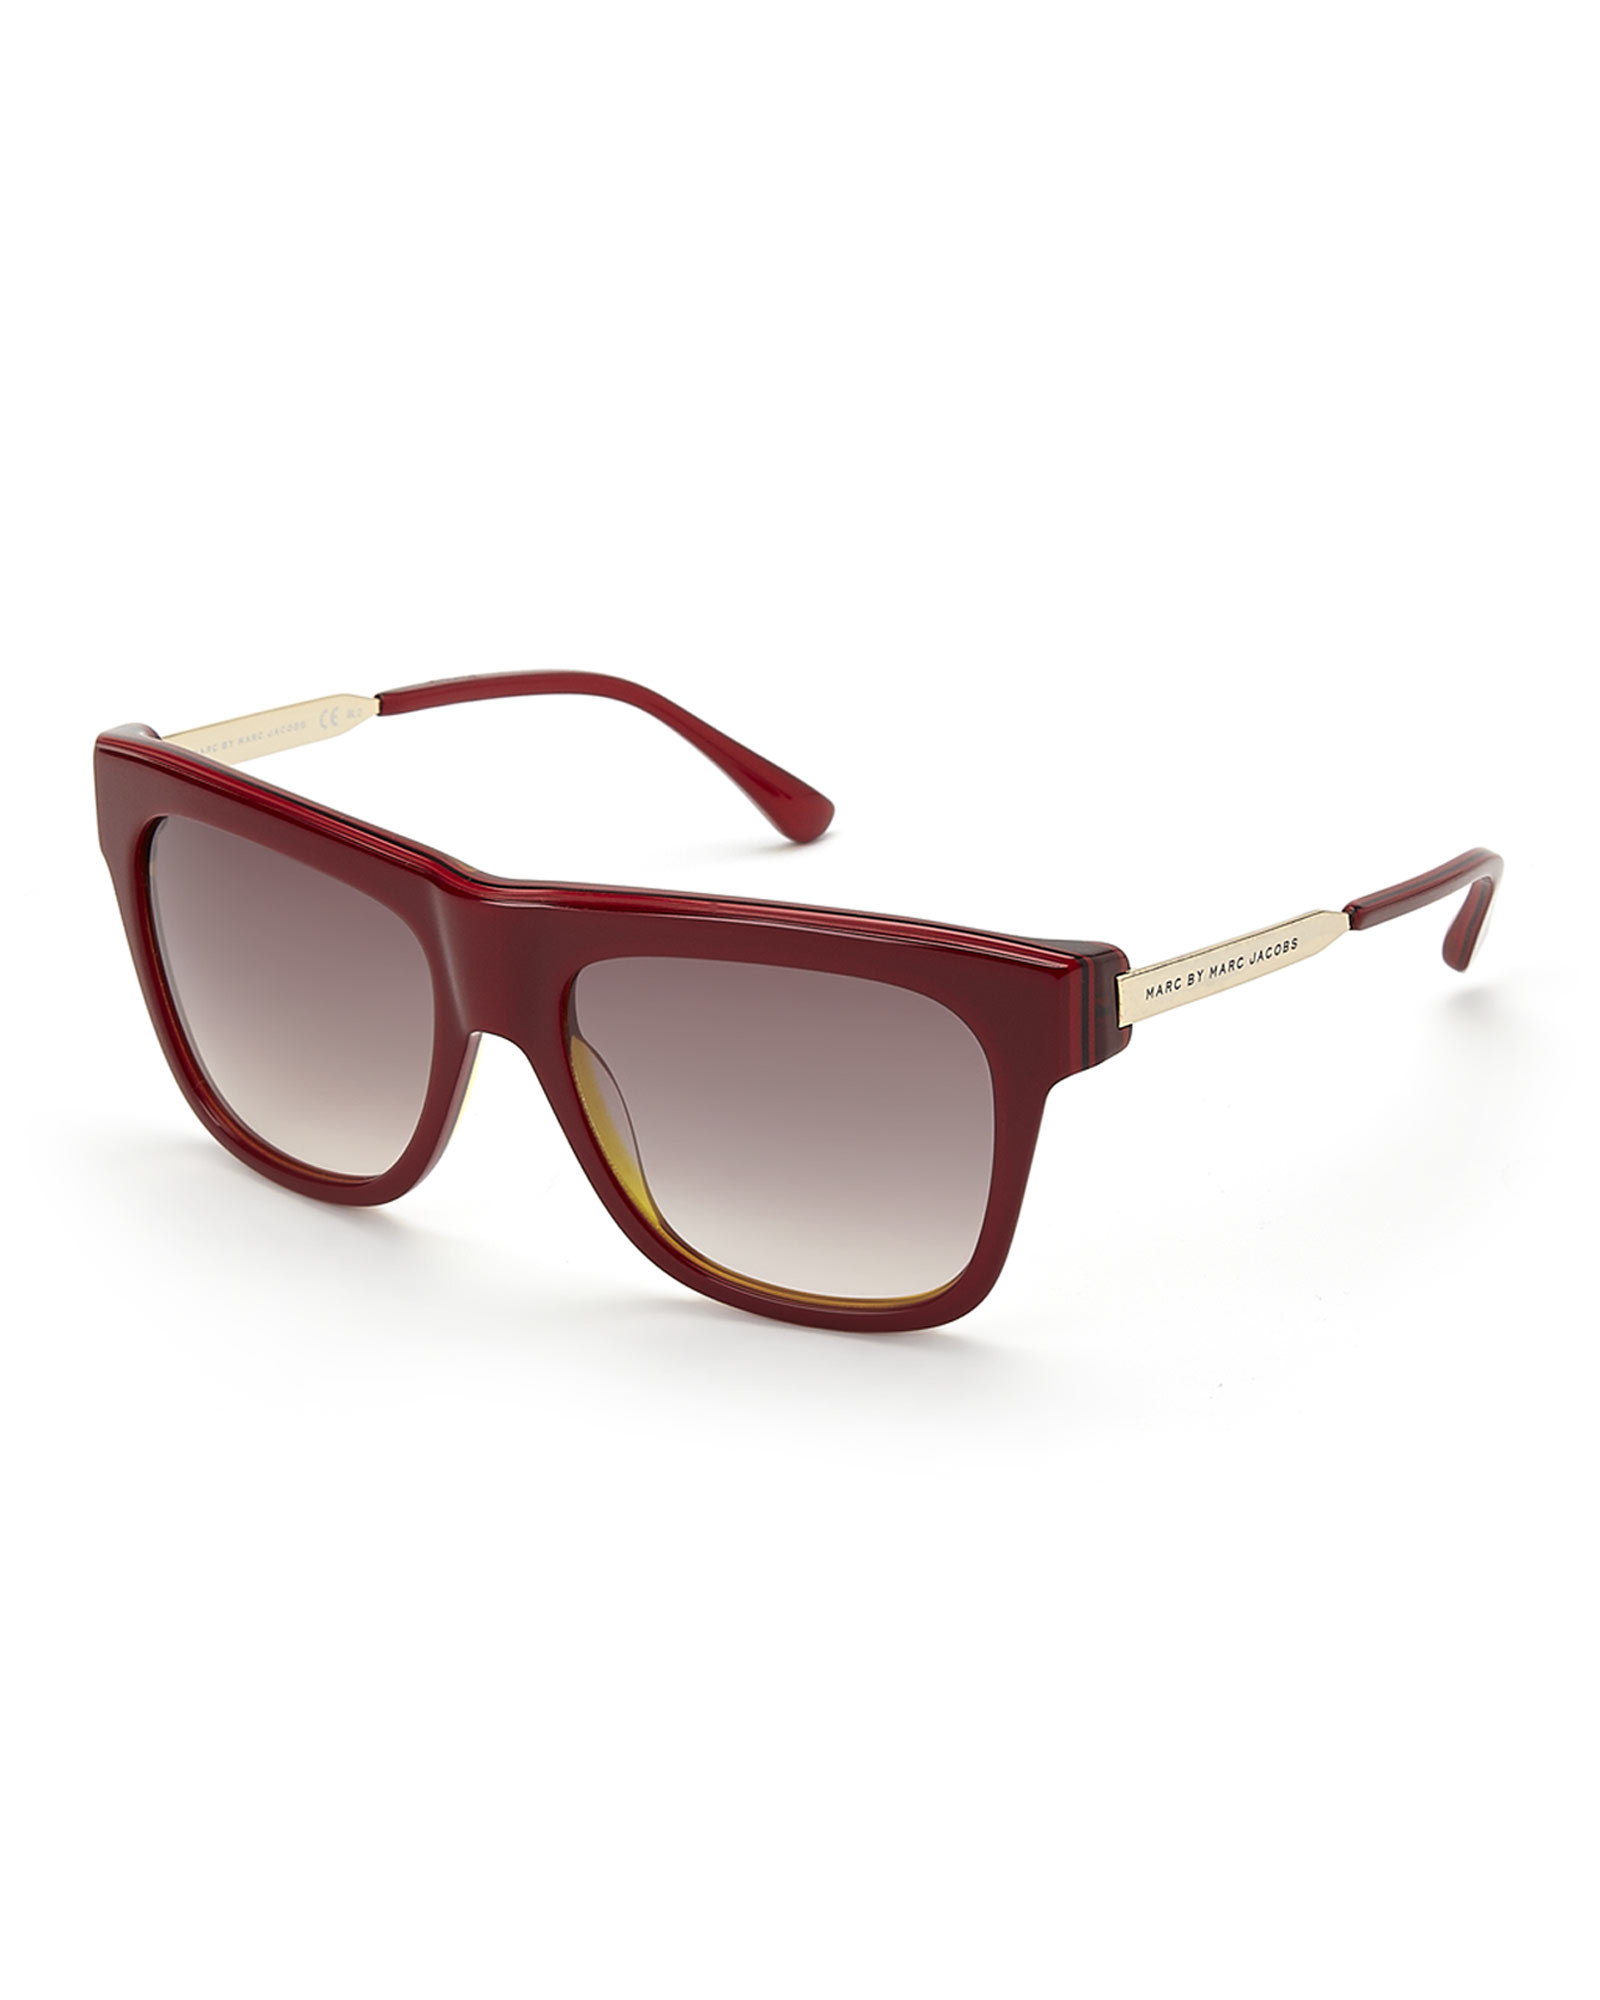 Marc Jacobs Red Sunglasses  marc by marc jacobs red 293 s wayfarer sunglasses in purple lyst